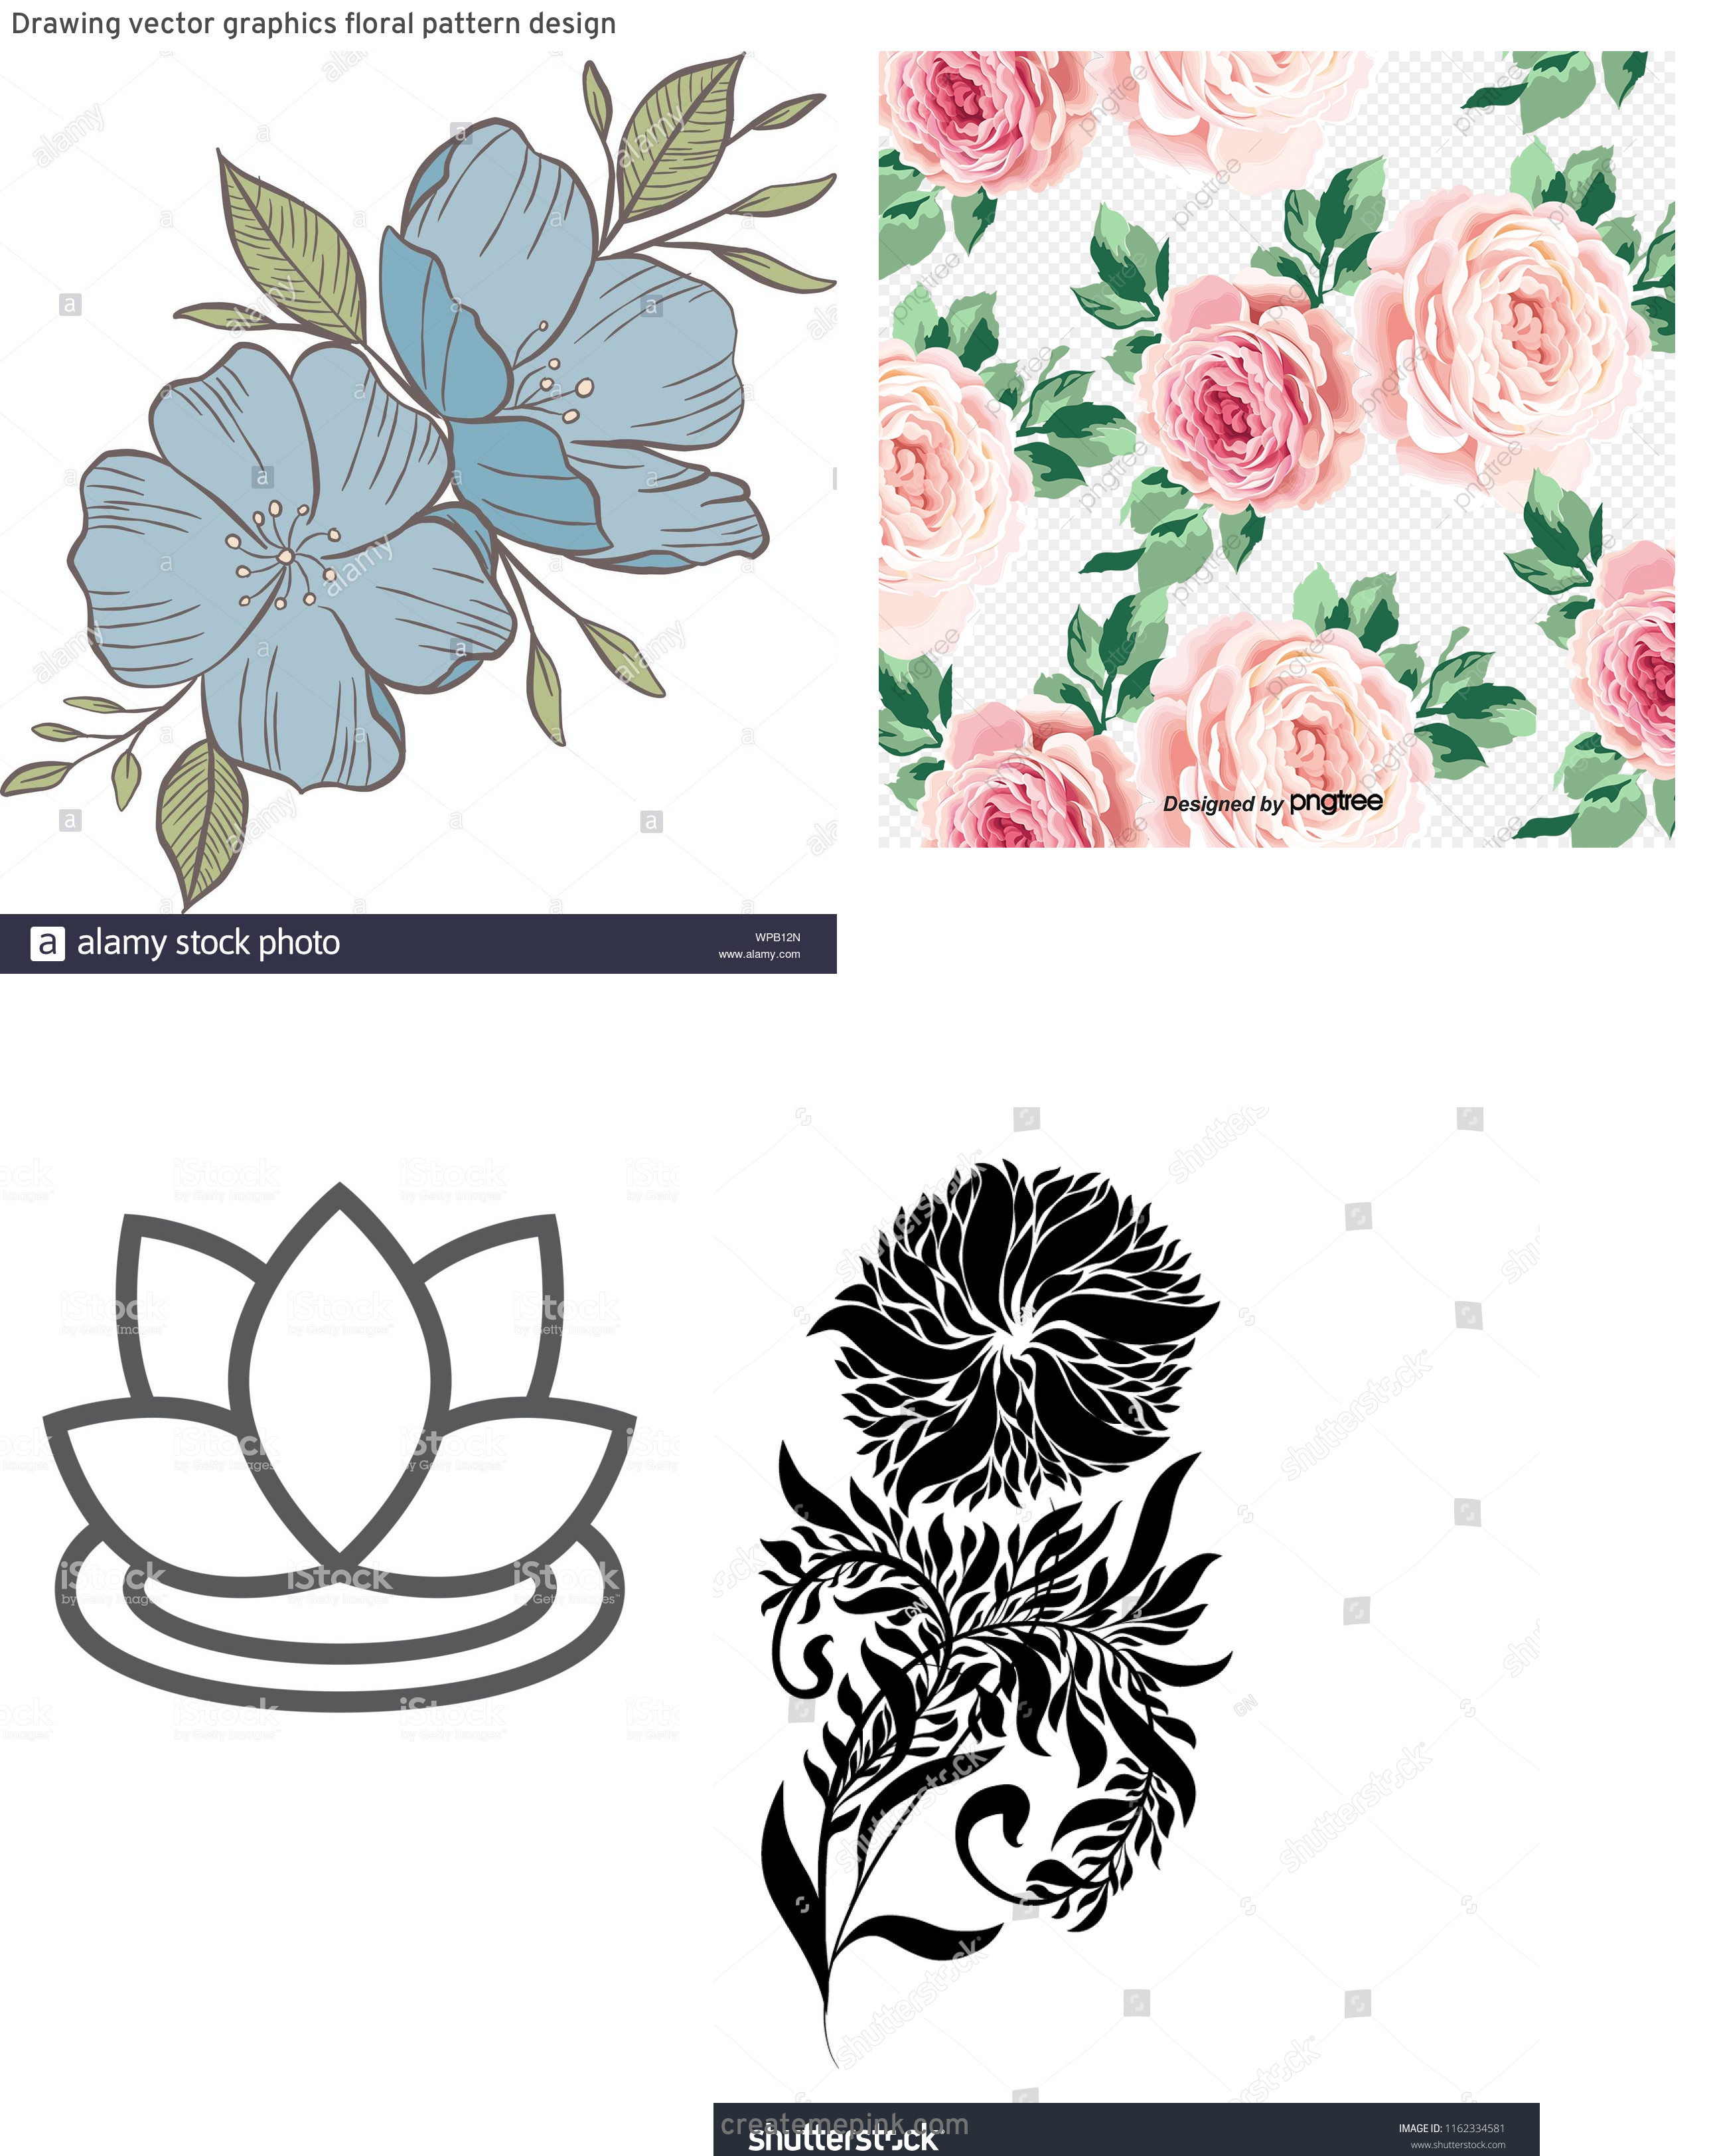 Vector Graphics Floral: Drawing Vector Graphics Floral Pattern Design